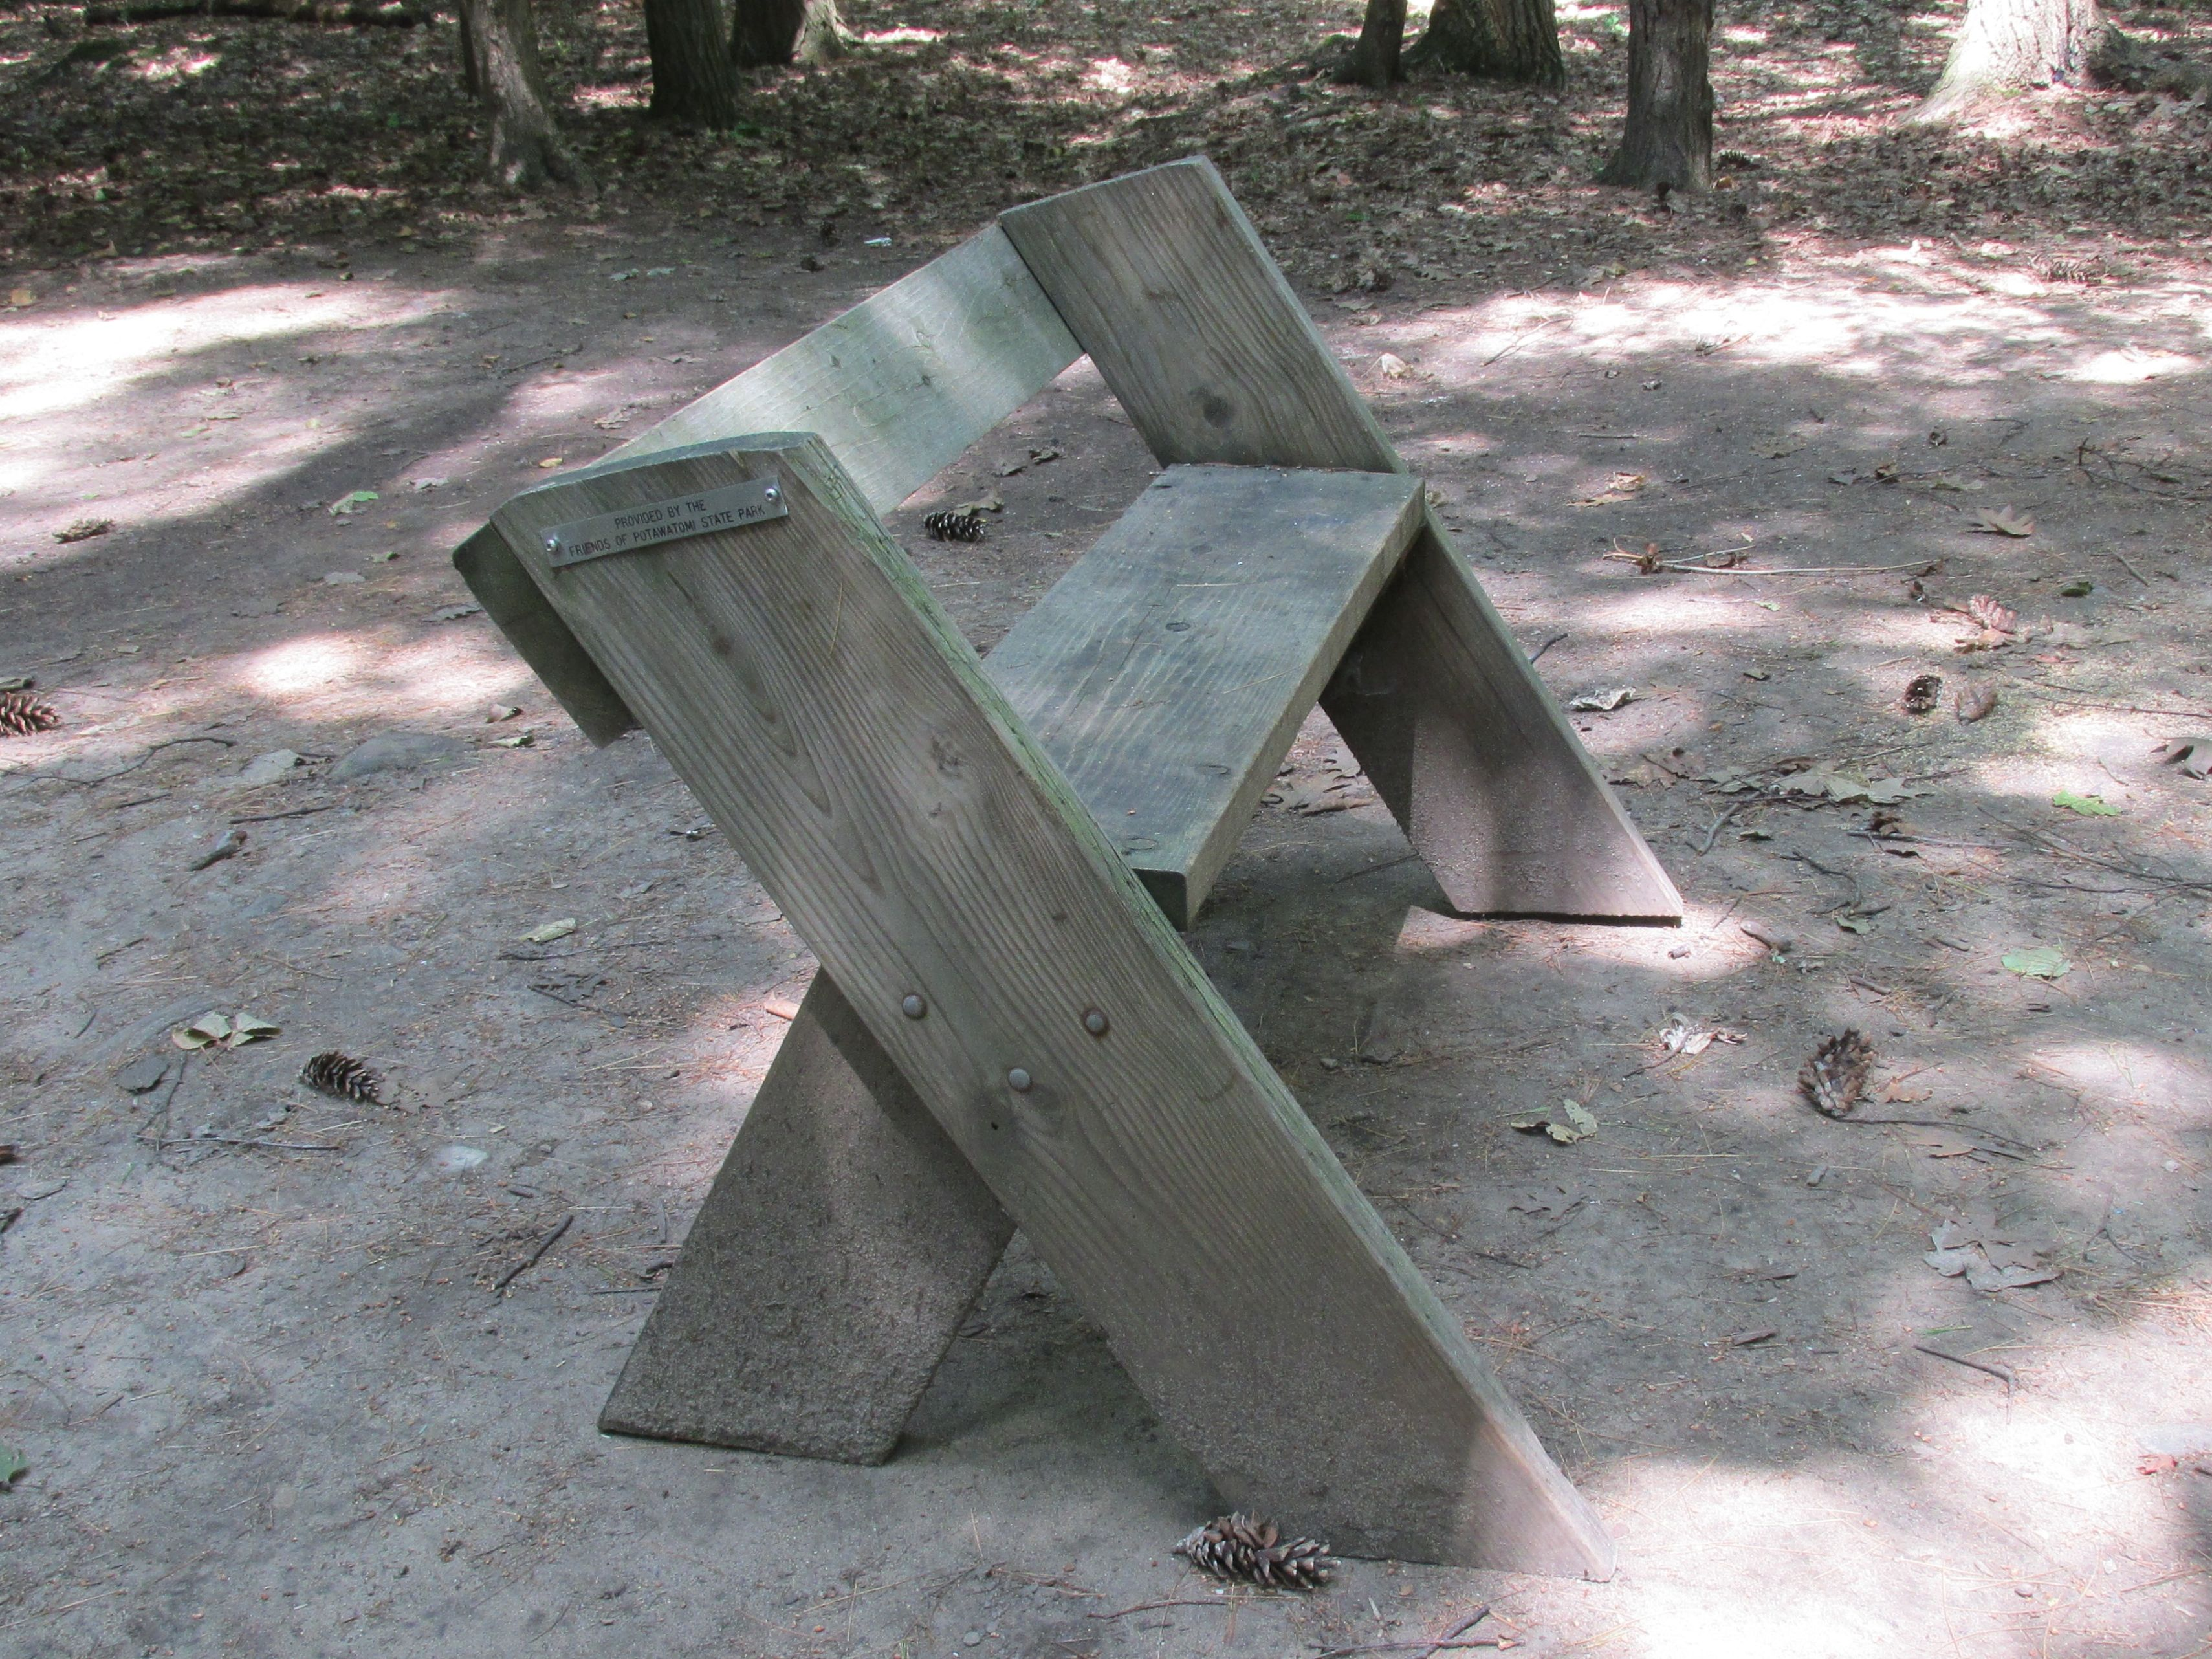 Bench at campsite